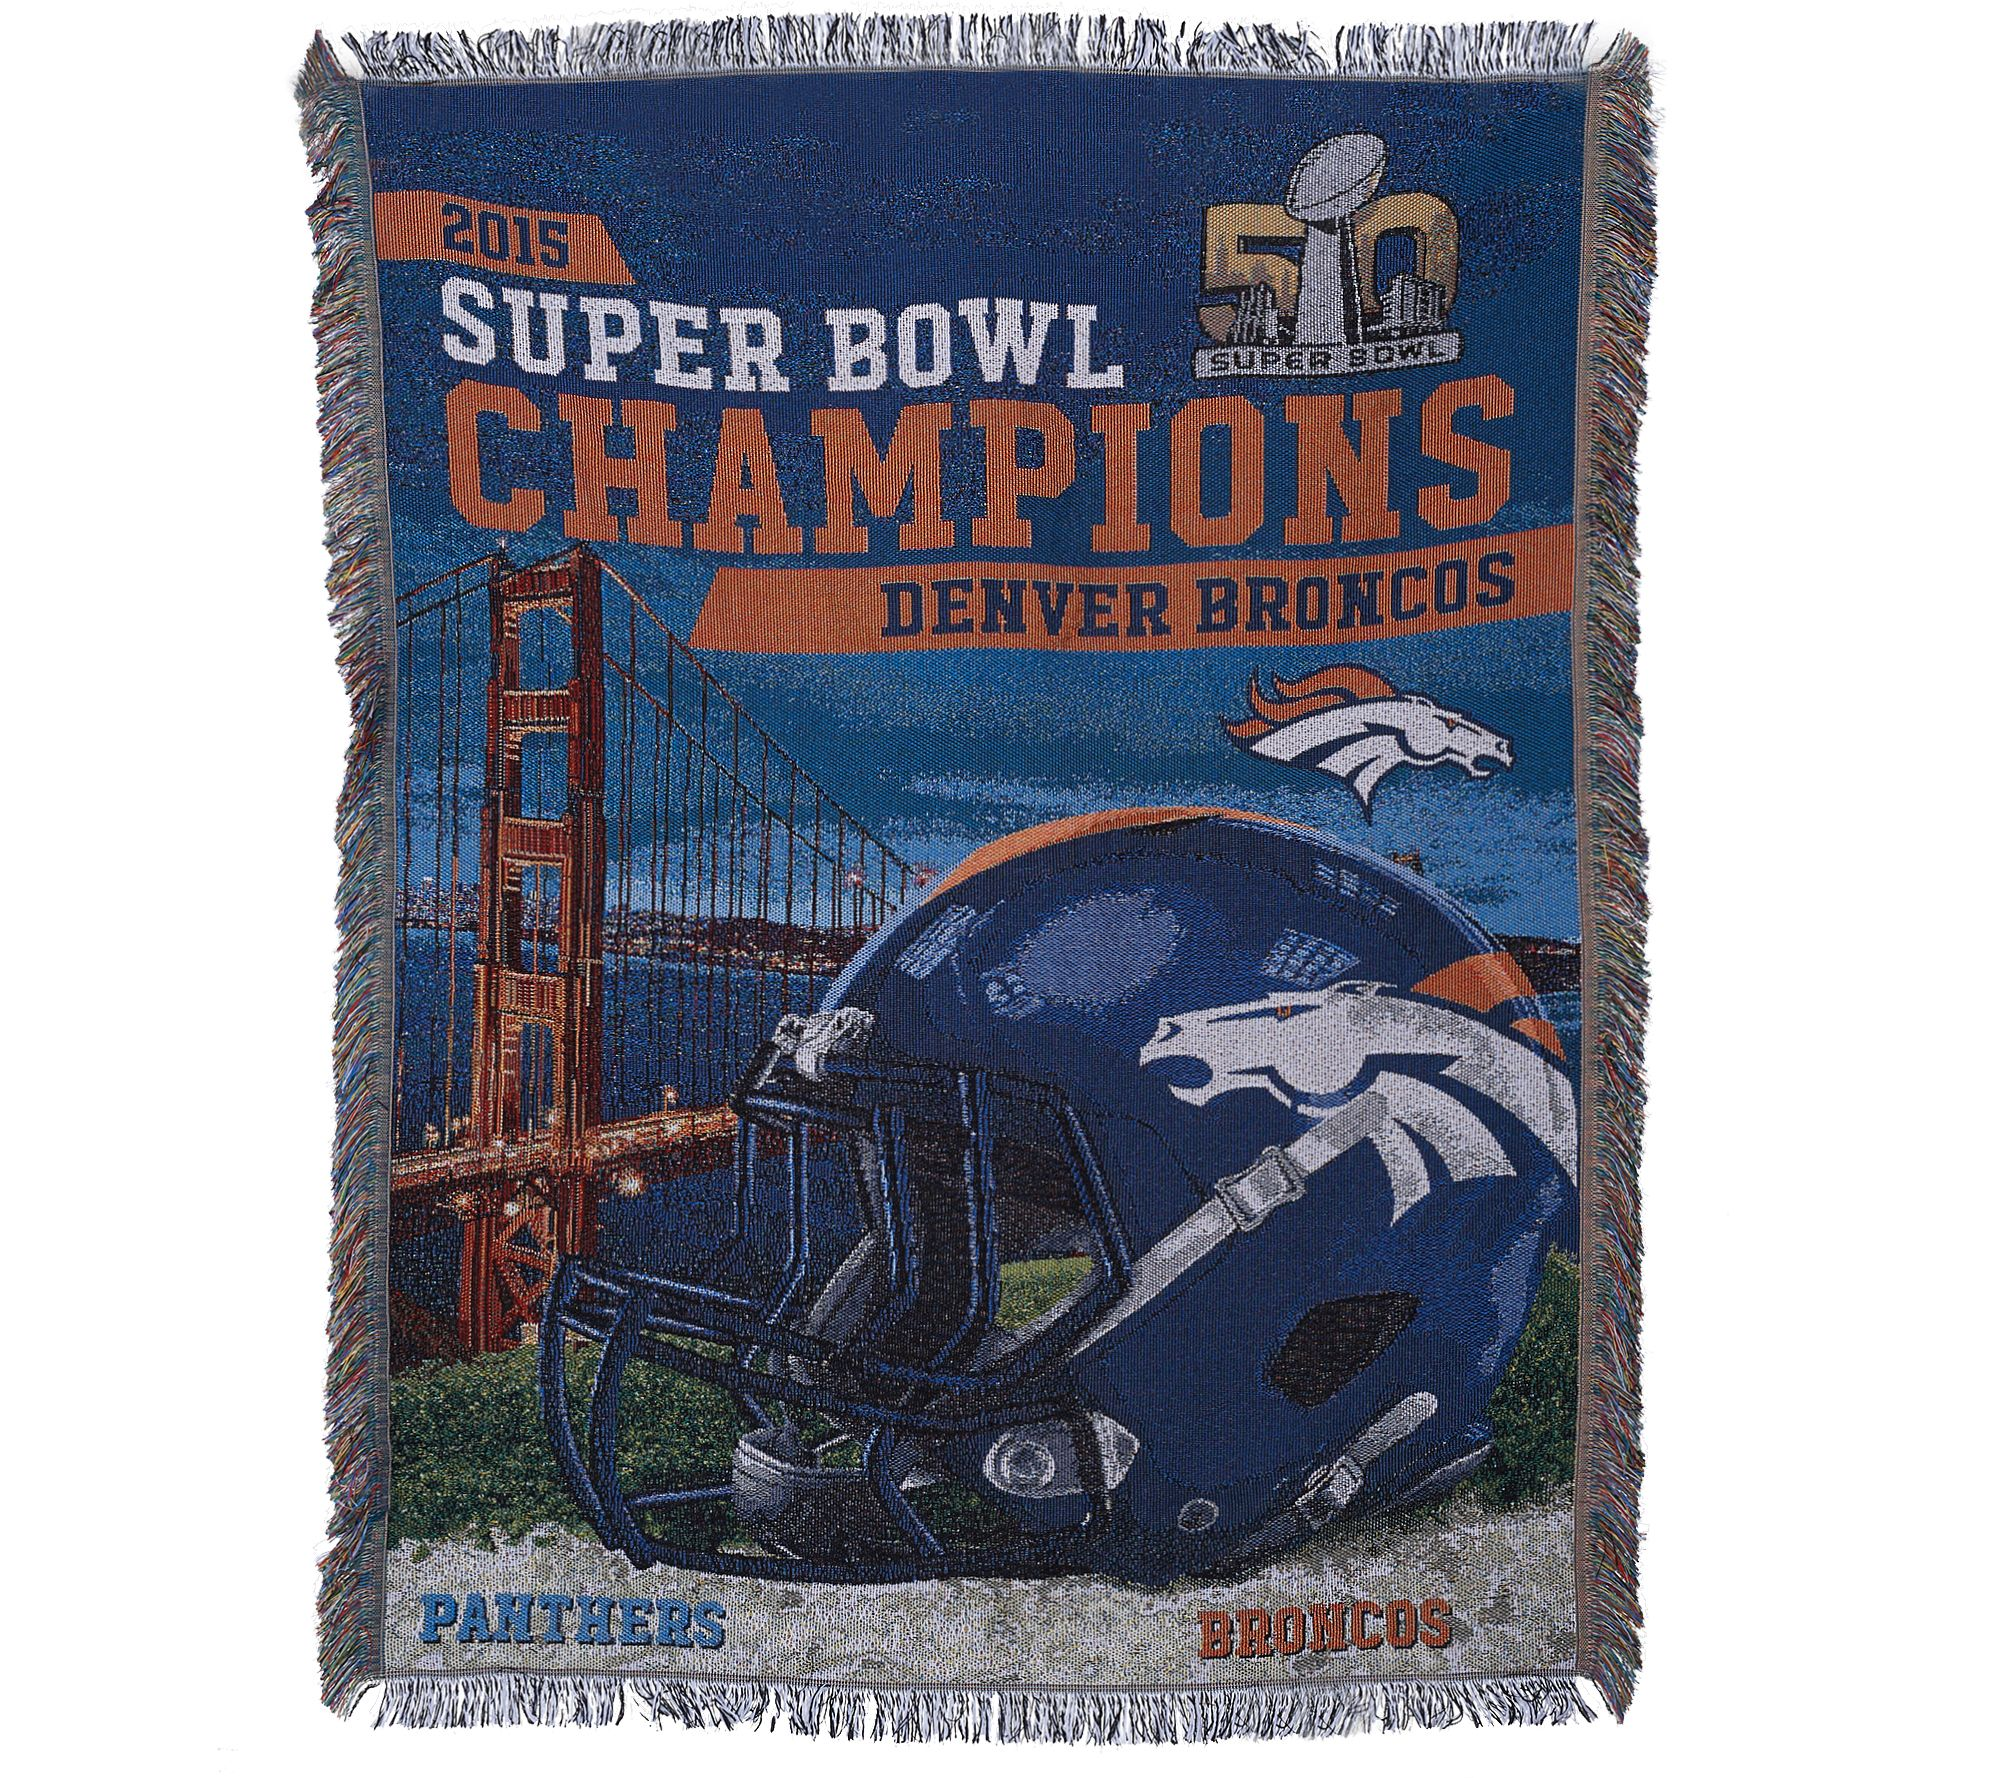 "Ship 2/26 Super Bowl 50 Champs Denver Broncos 48""x60""Tapestry"